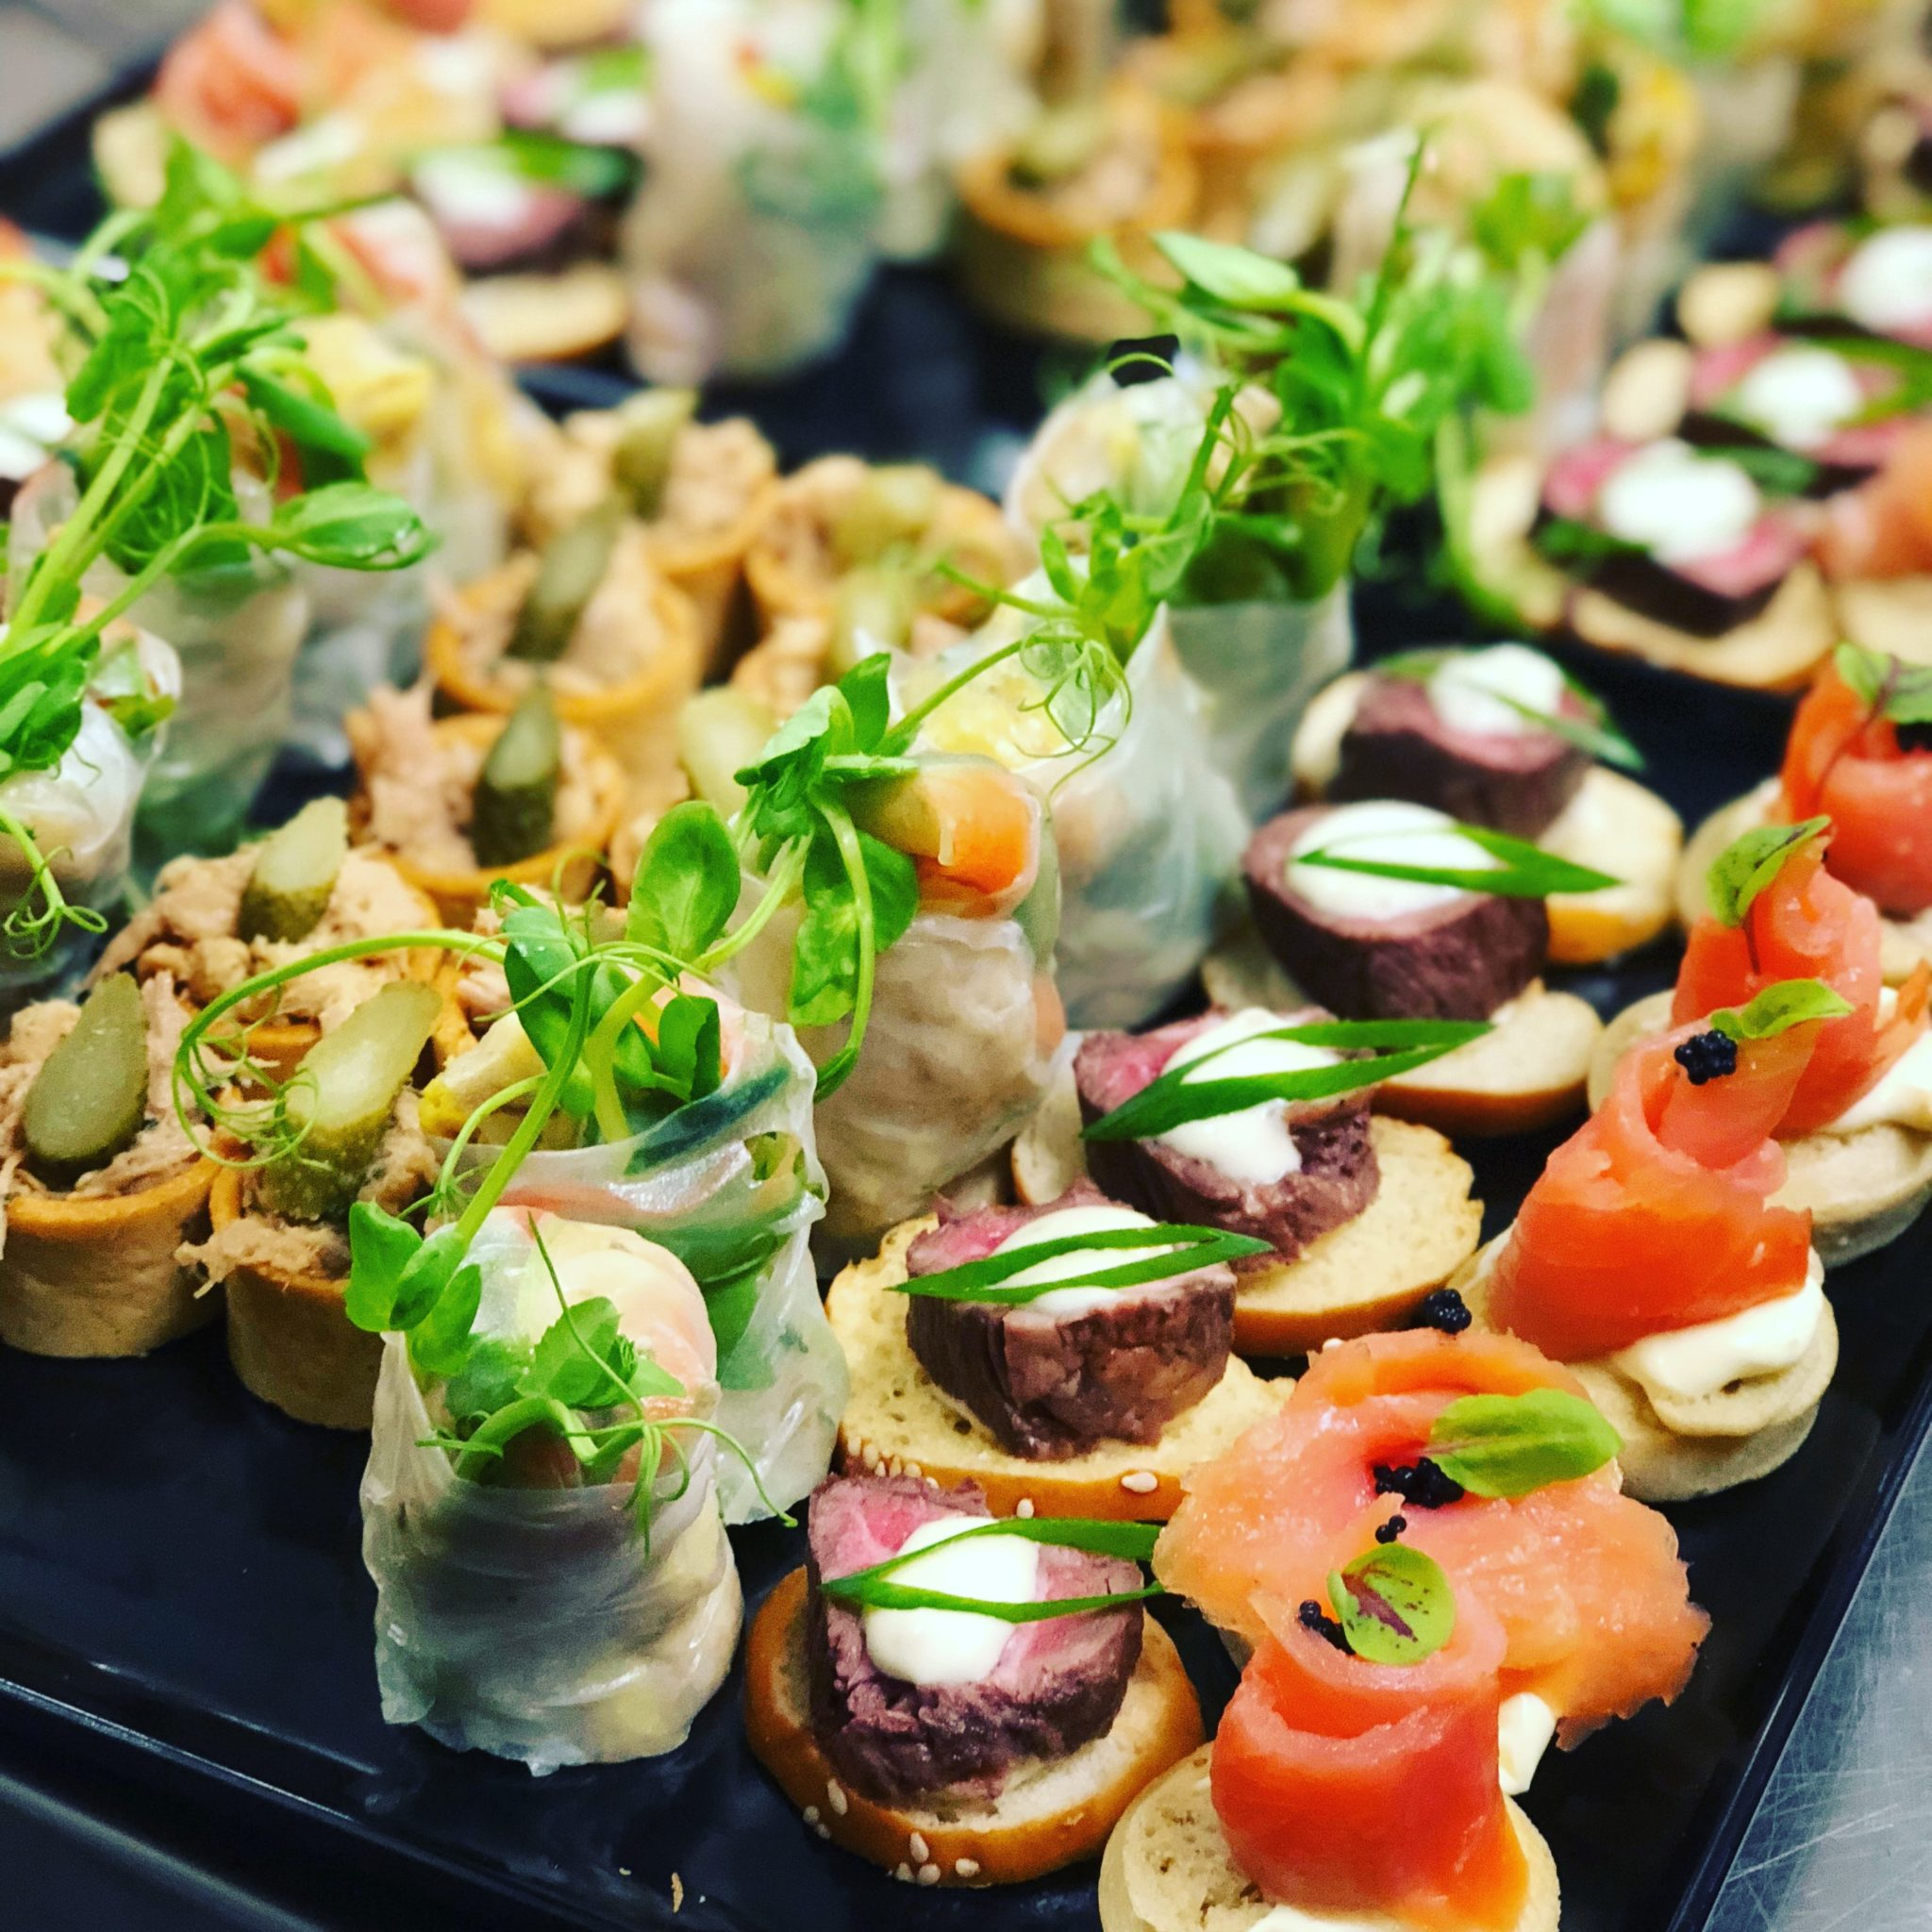 Catering Food For Wedding: CREATIVE CATERING PERTH